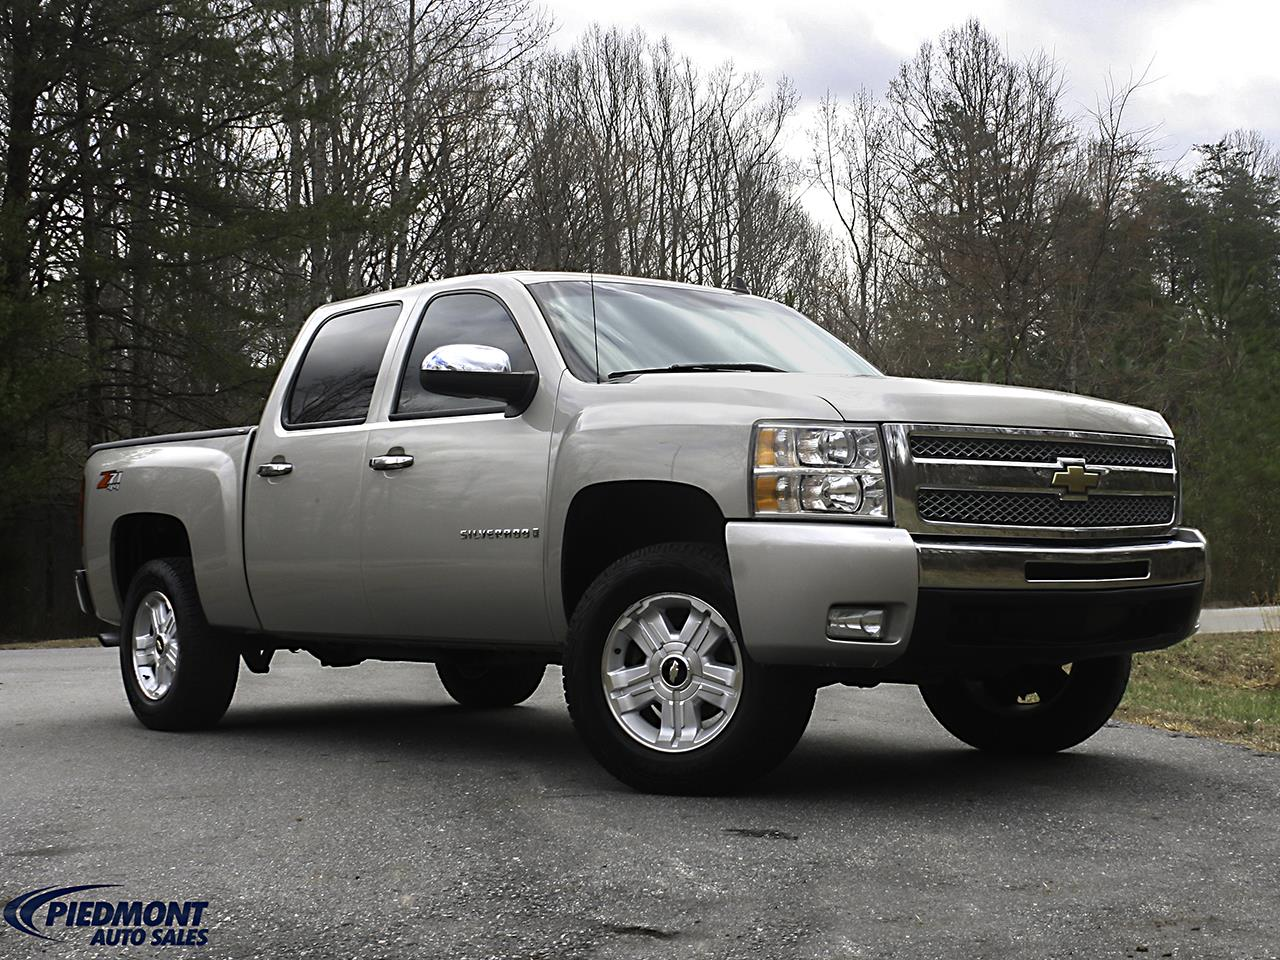 2007 Chevrolet Silverado 1500 LT1 Crew Cab 4WD for sale by dealer